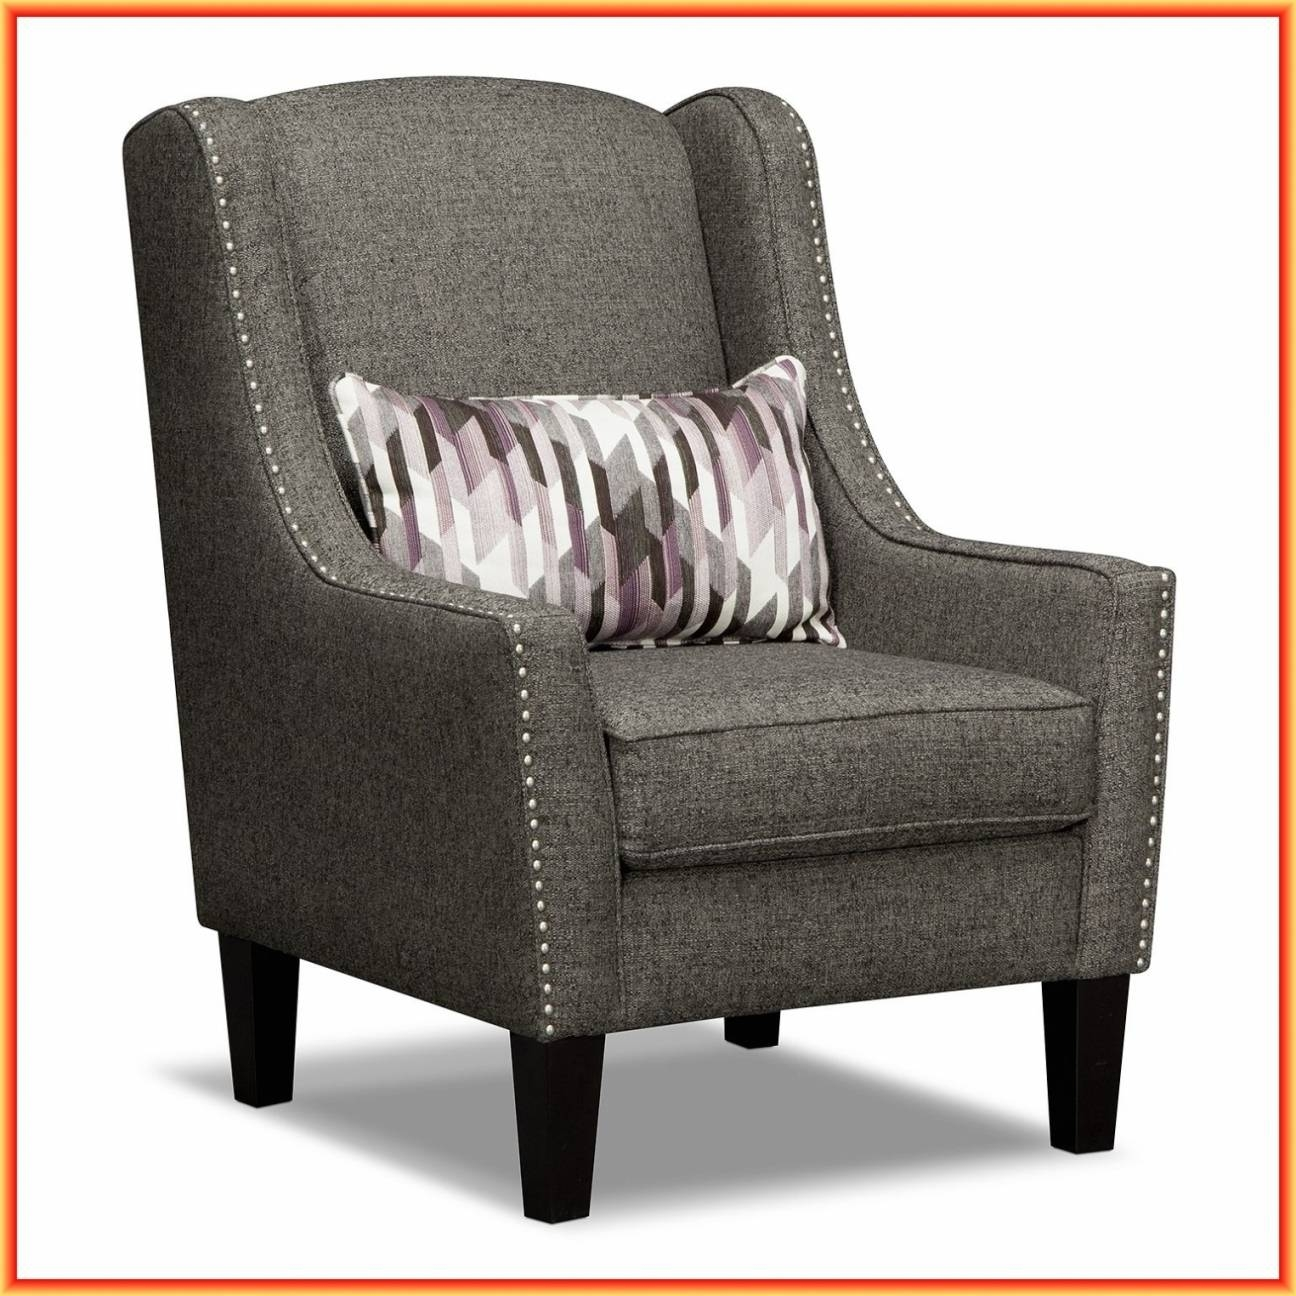 Small Arm Chairs Best 30 43 Of Small Armchairs Small Spaces